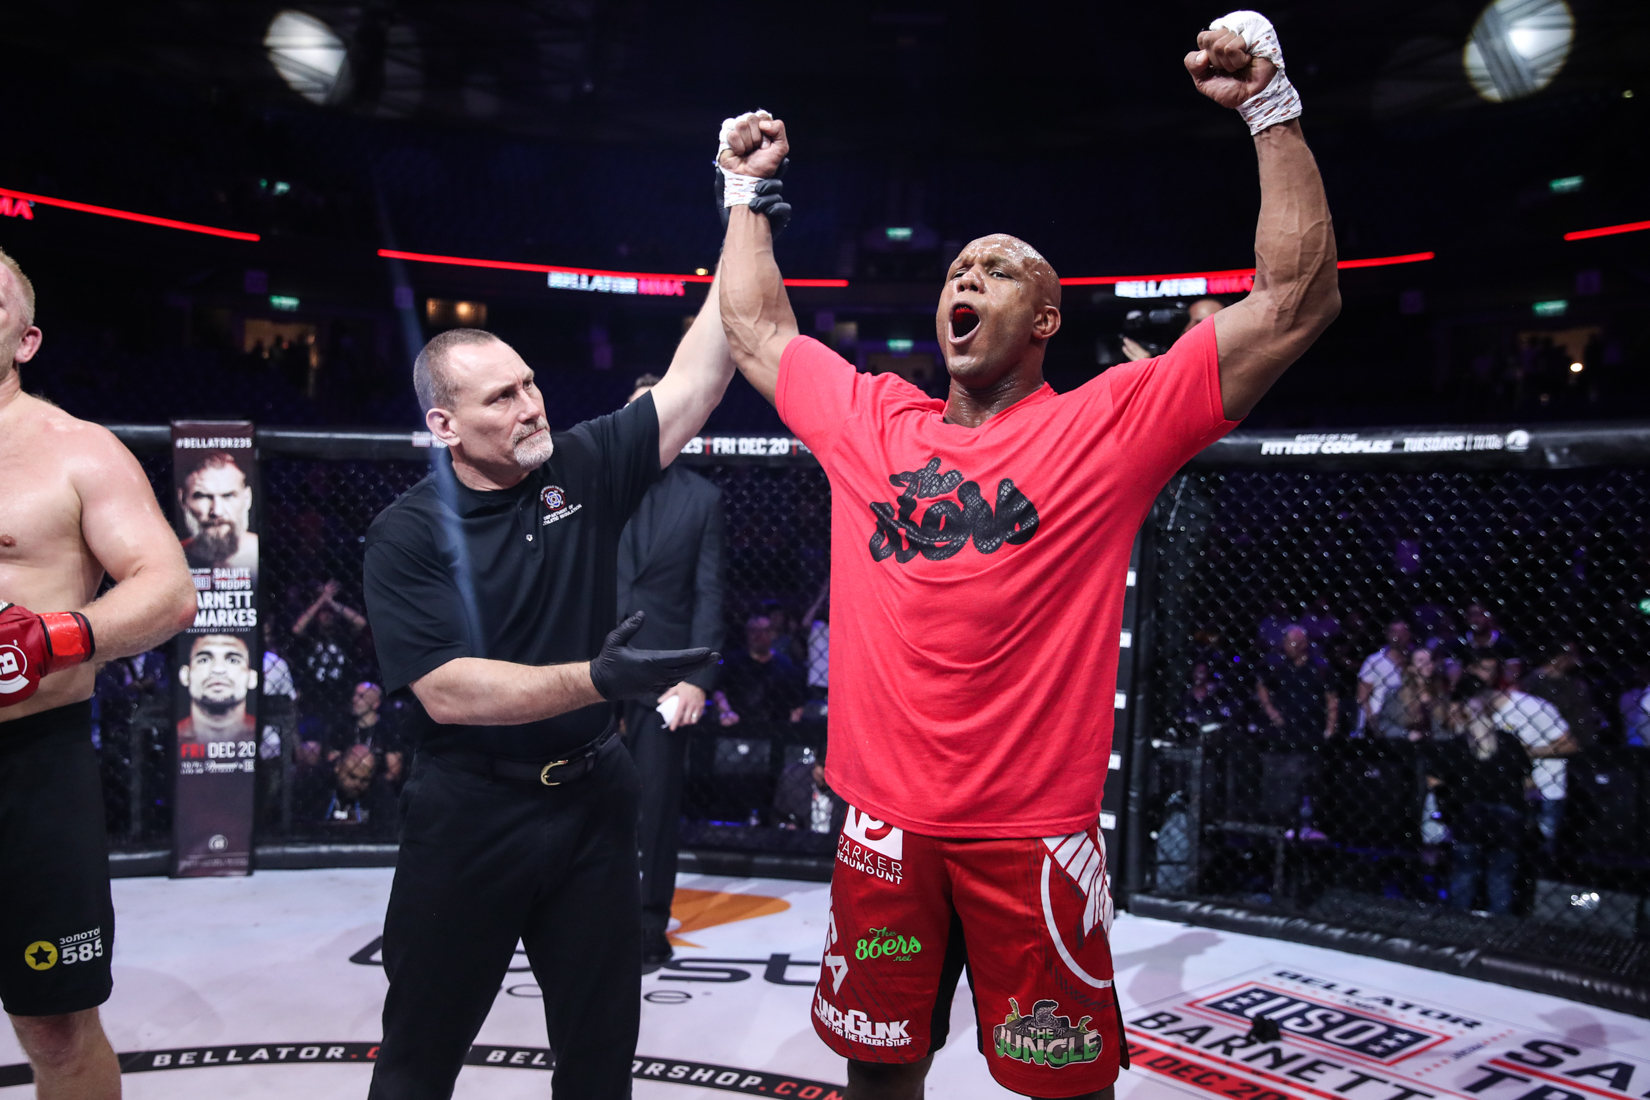 Full Results & Photos for Bellator 234: Kharitonov vs. Vassell